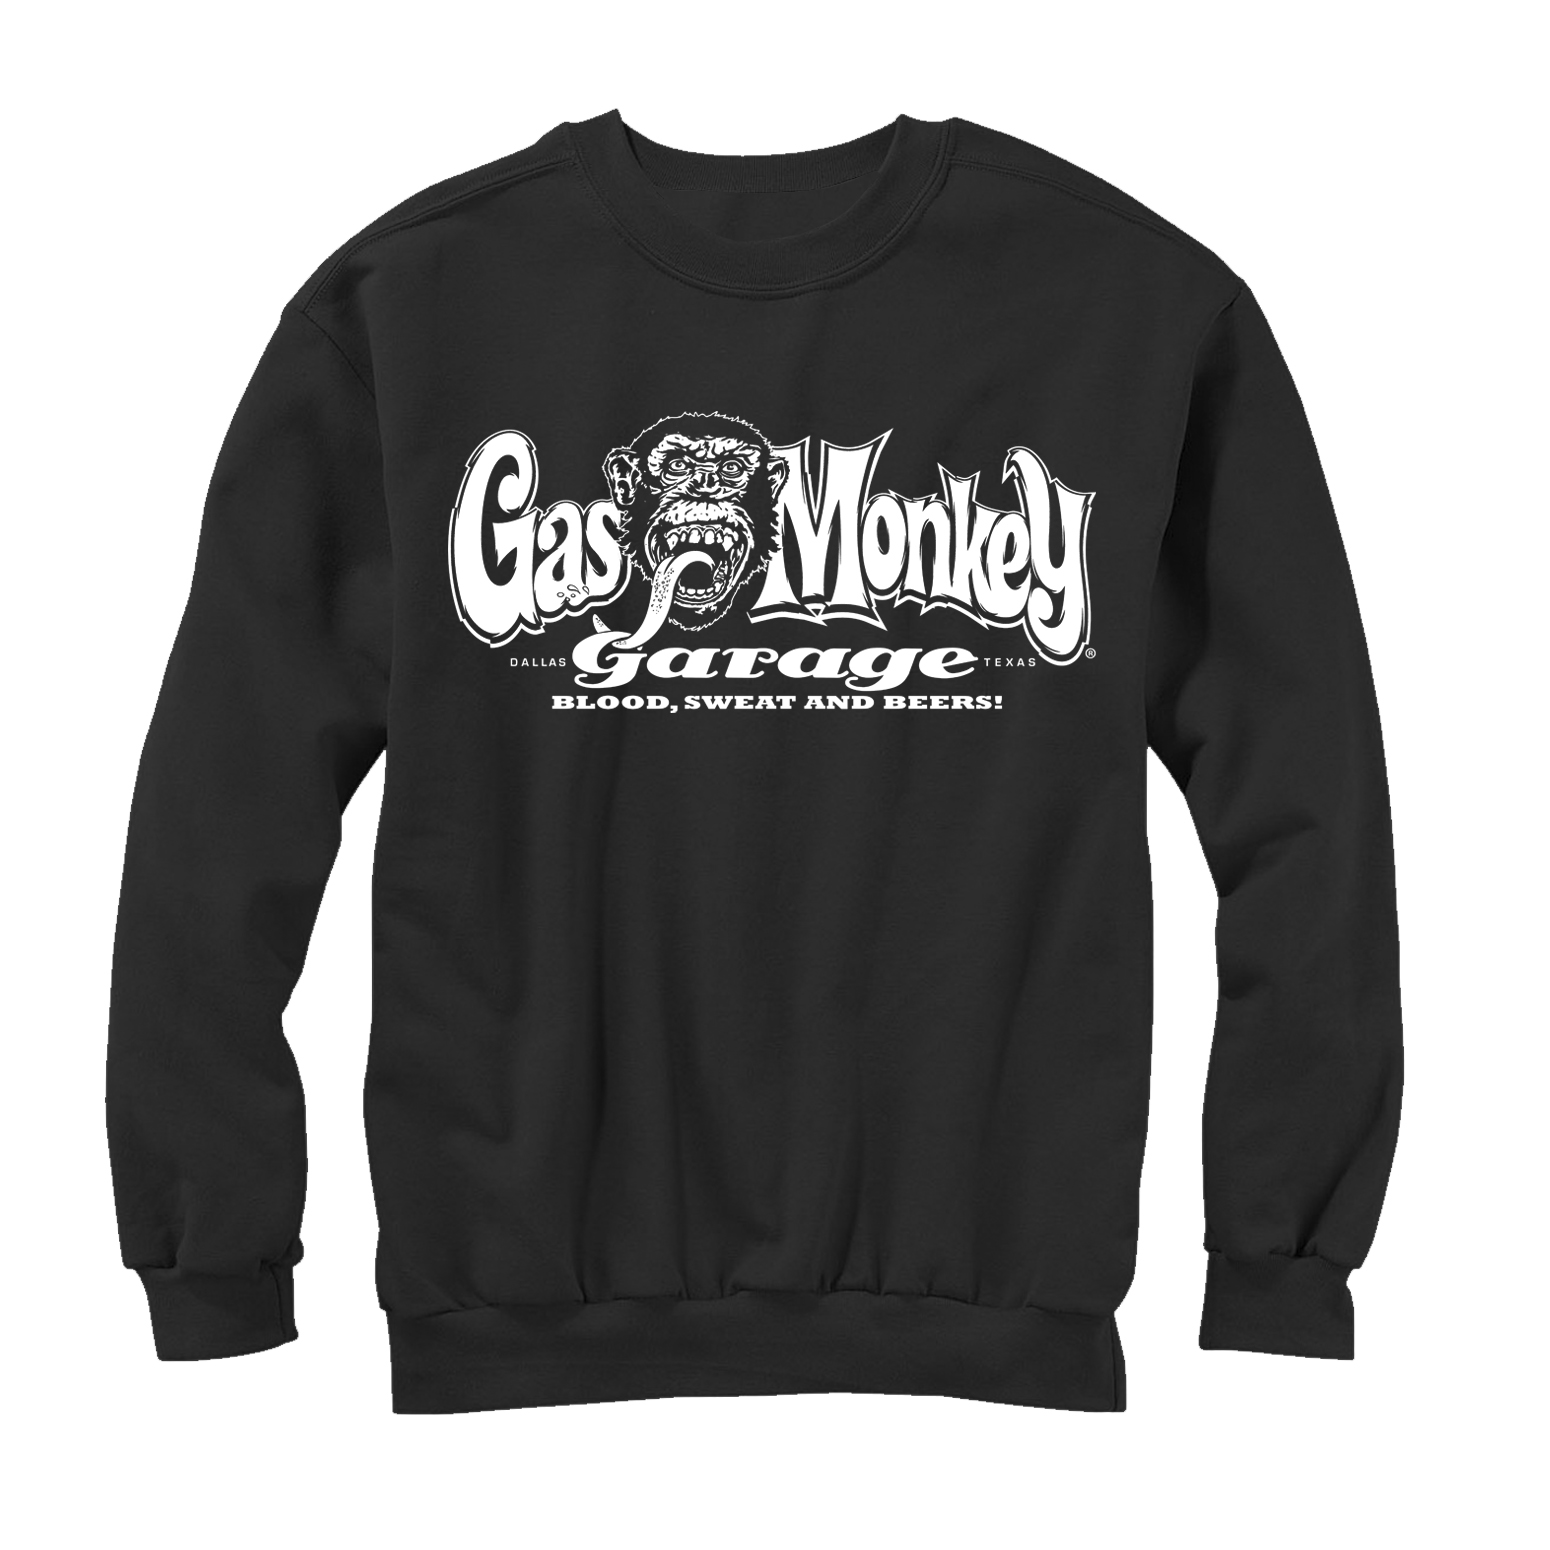 Gas Monkey Blood, Sweat, and Beers Mens Graphic Sweatshirt